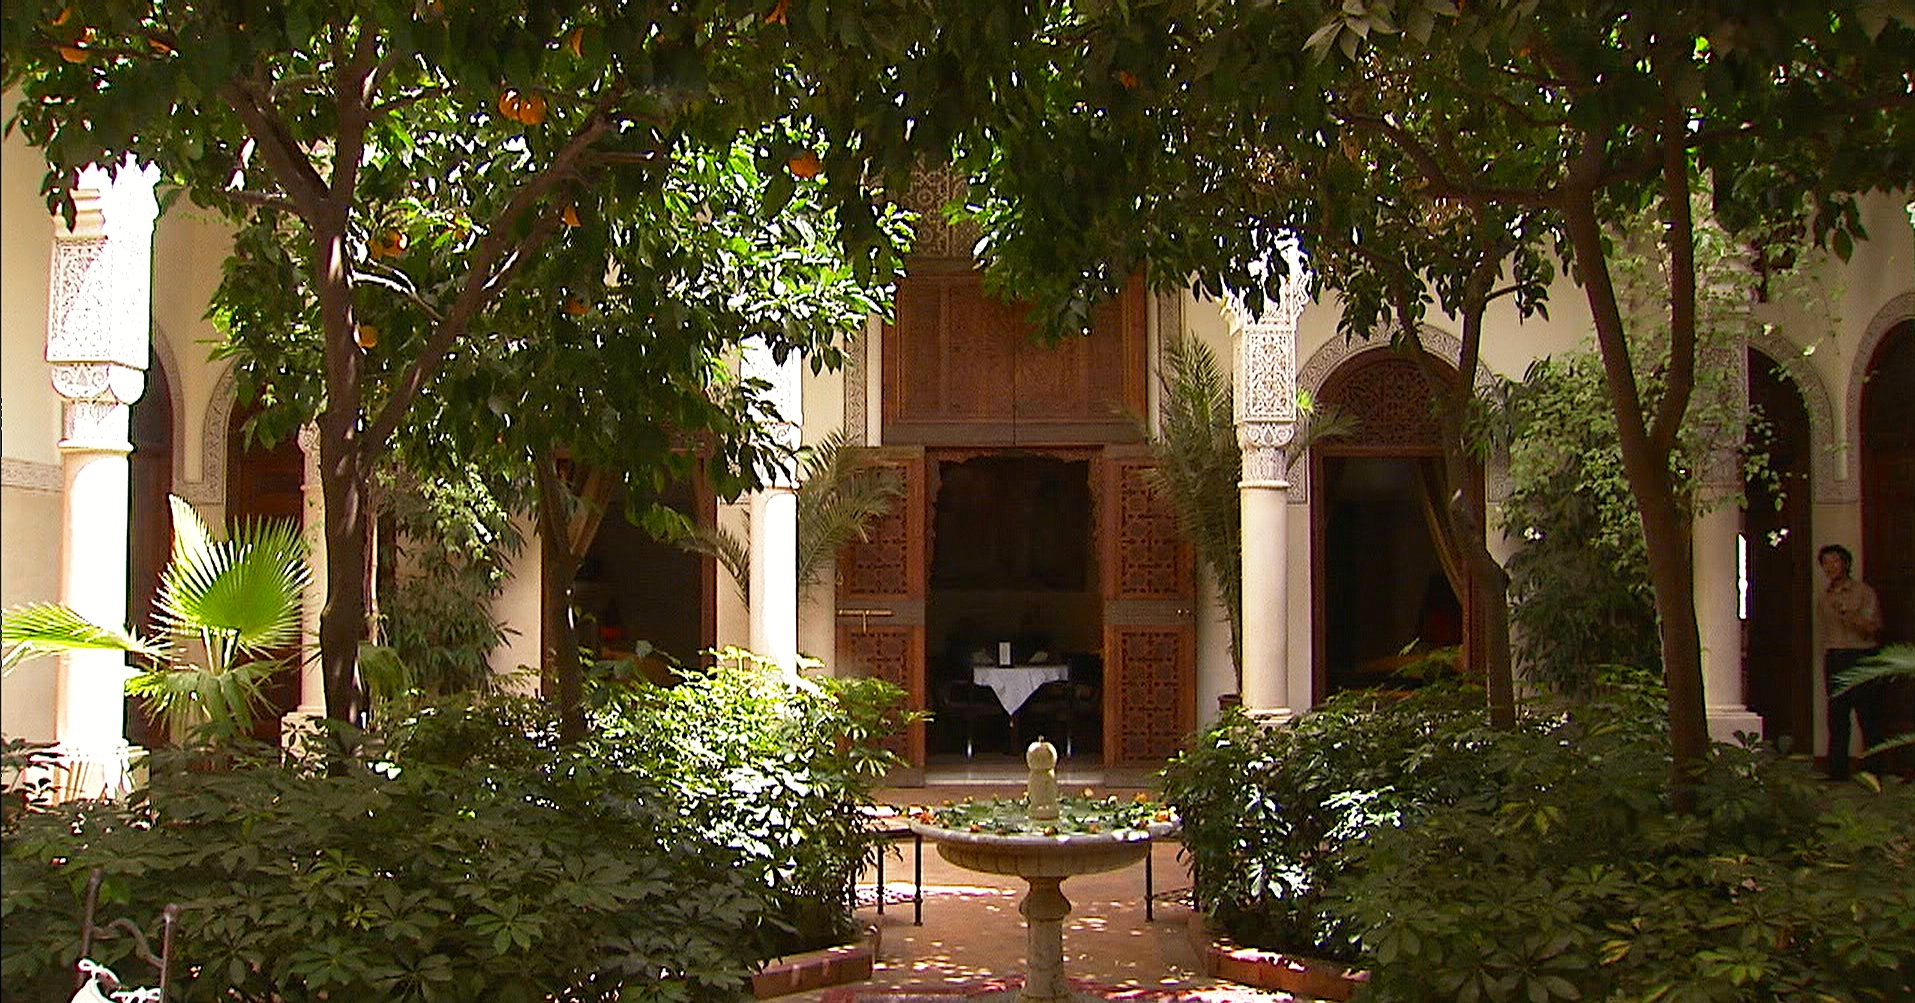 5 fabulous courtyard gardens in marrakech morocco travel for Villa des jardins marrakech